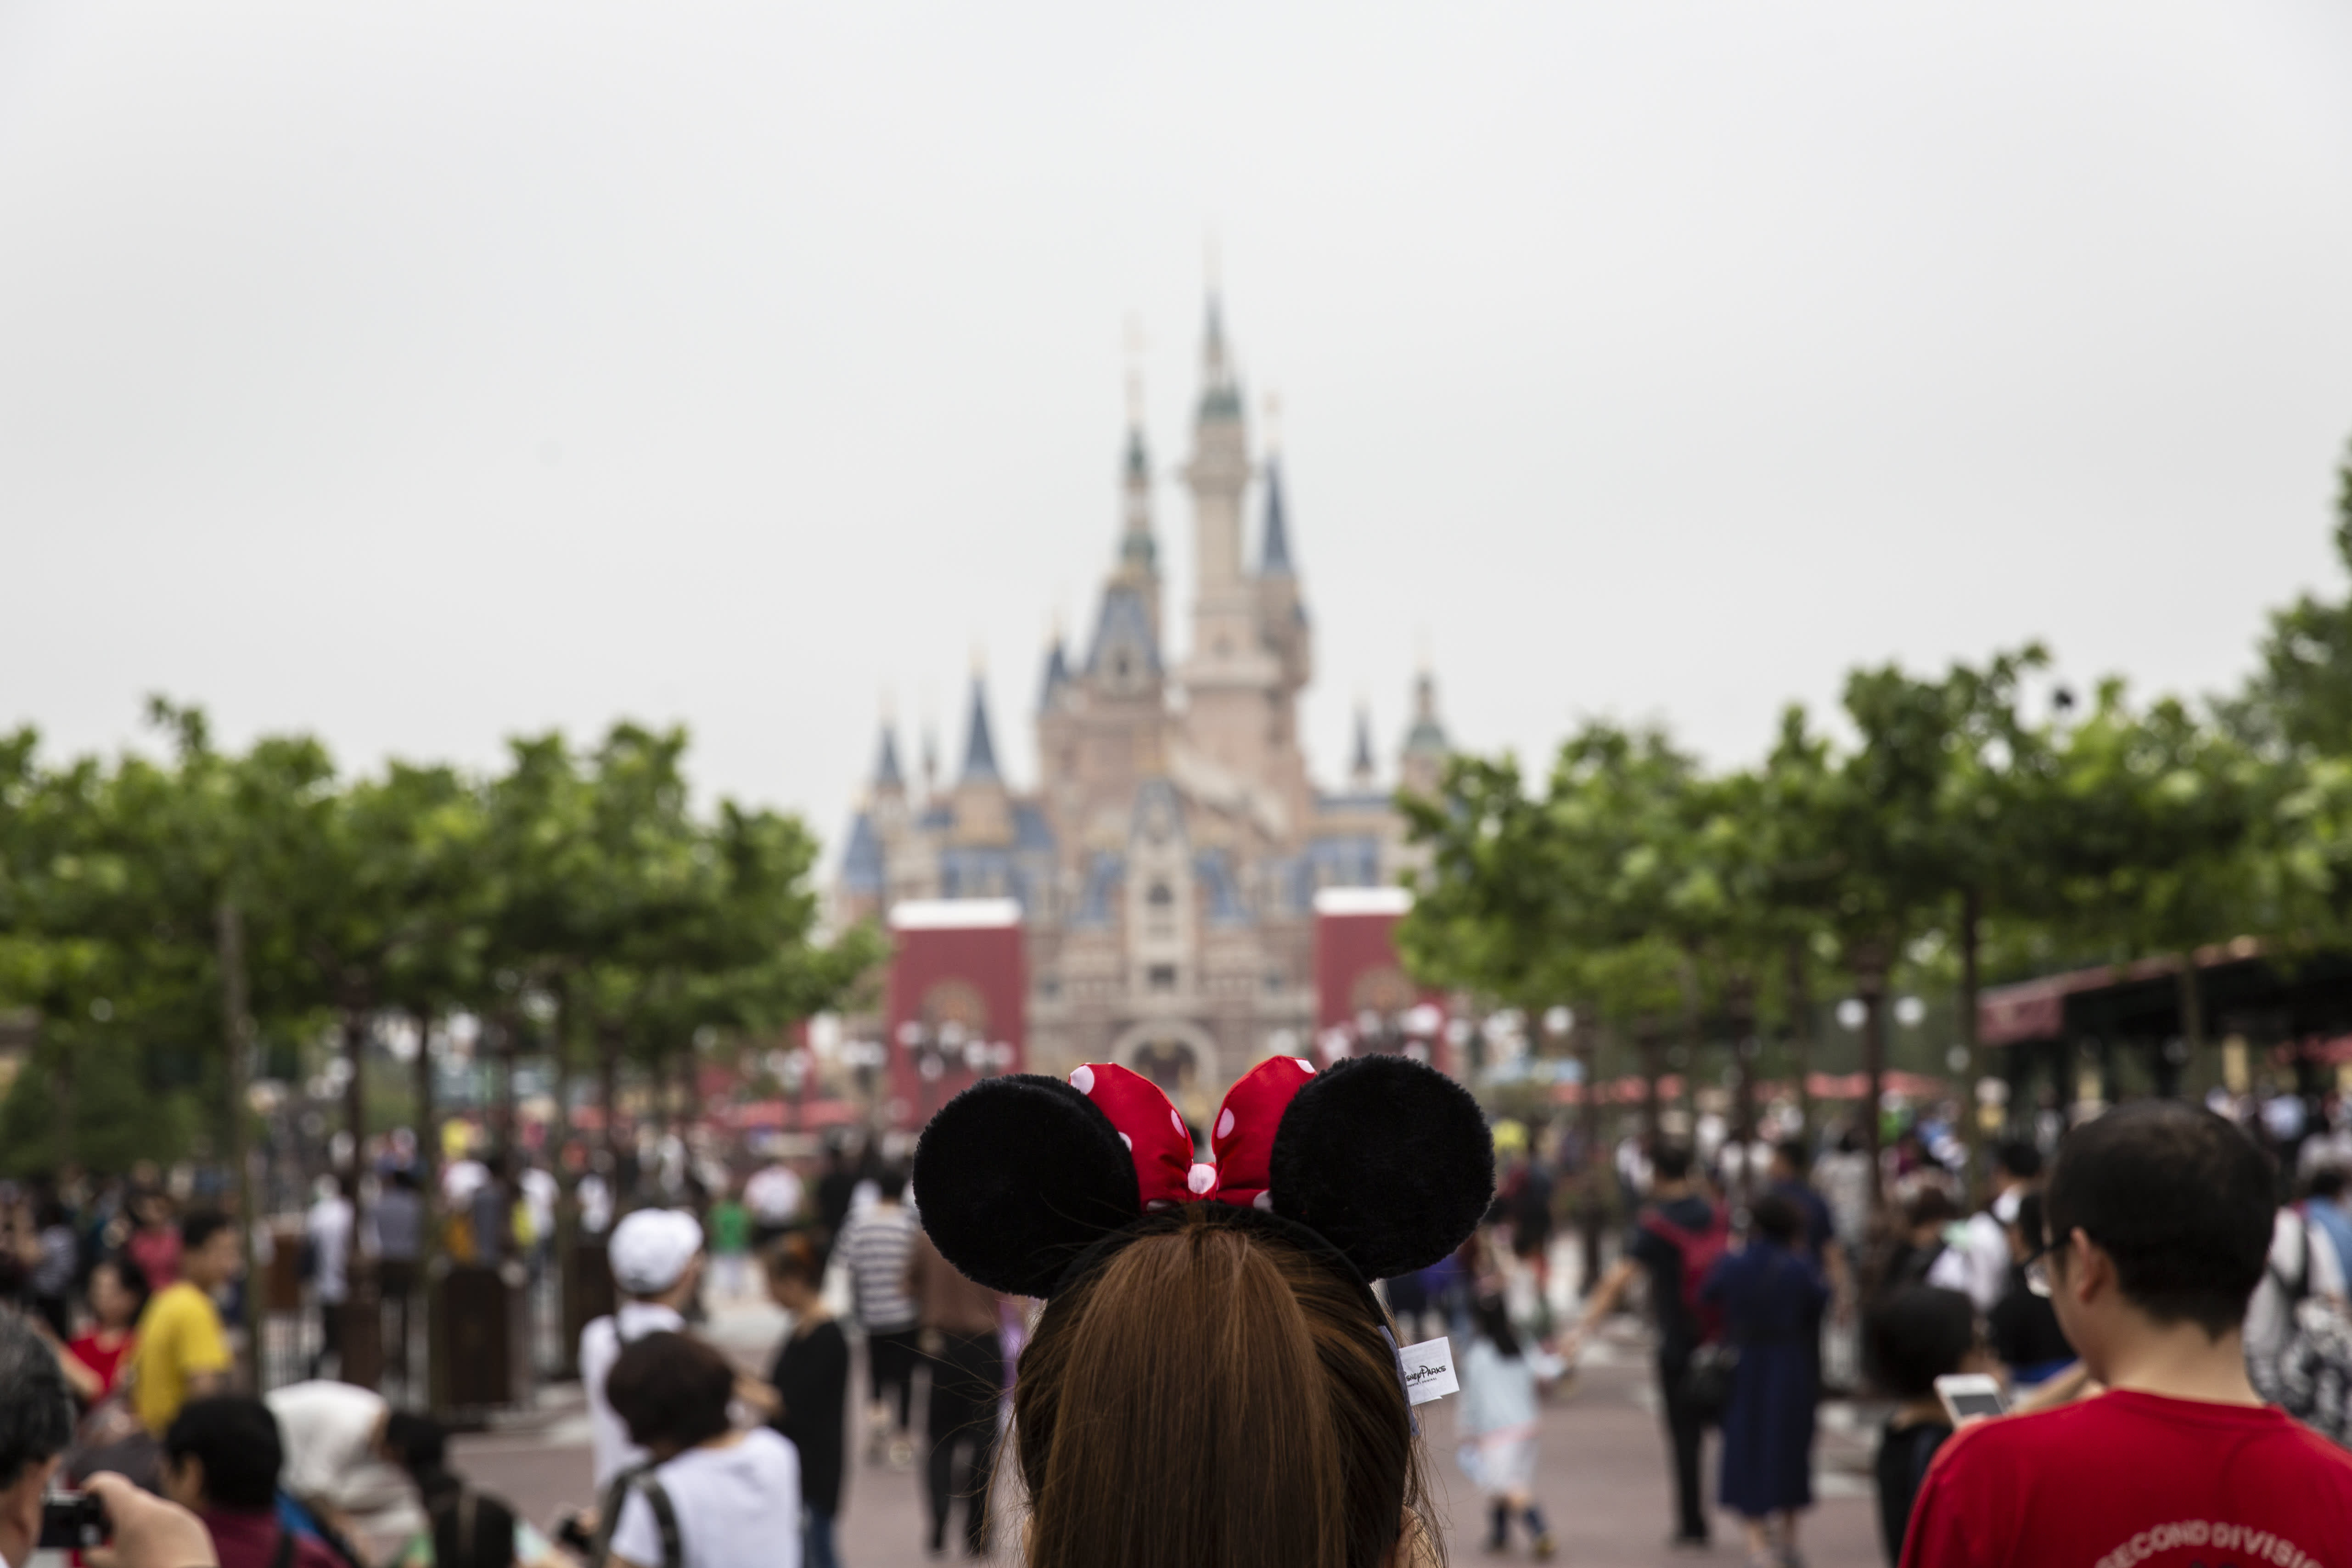 Disney Credit Card Review: Which is best for theme park visits?